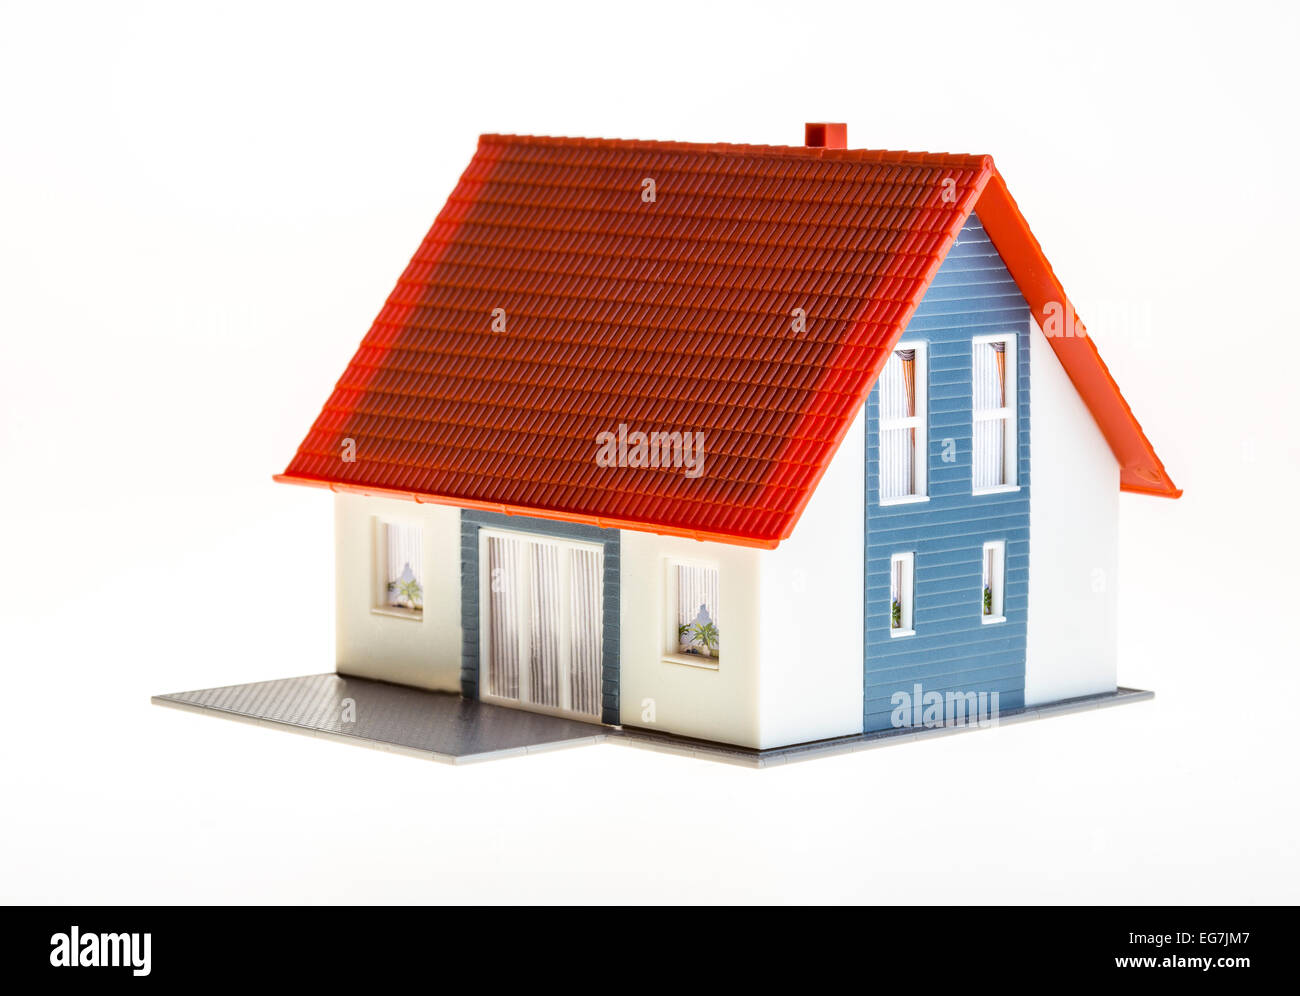 Symbolic image, home, house, real estate, plastic model house, - Stock Image